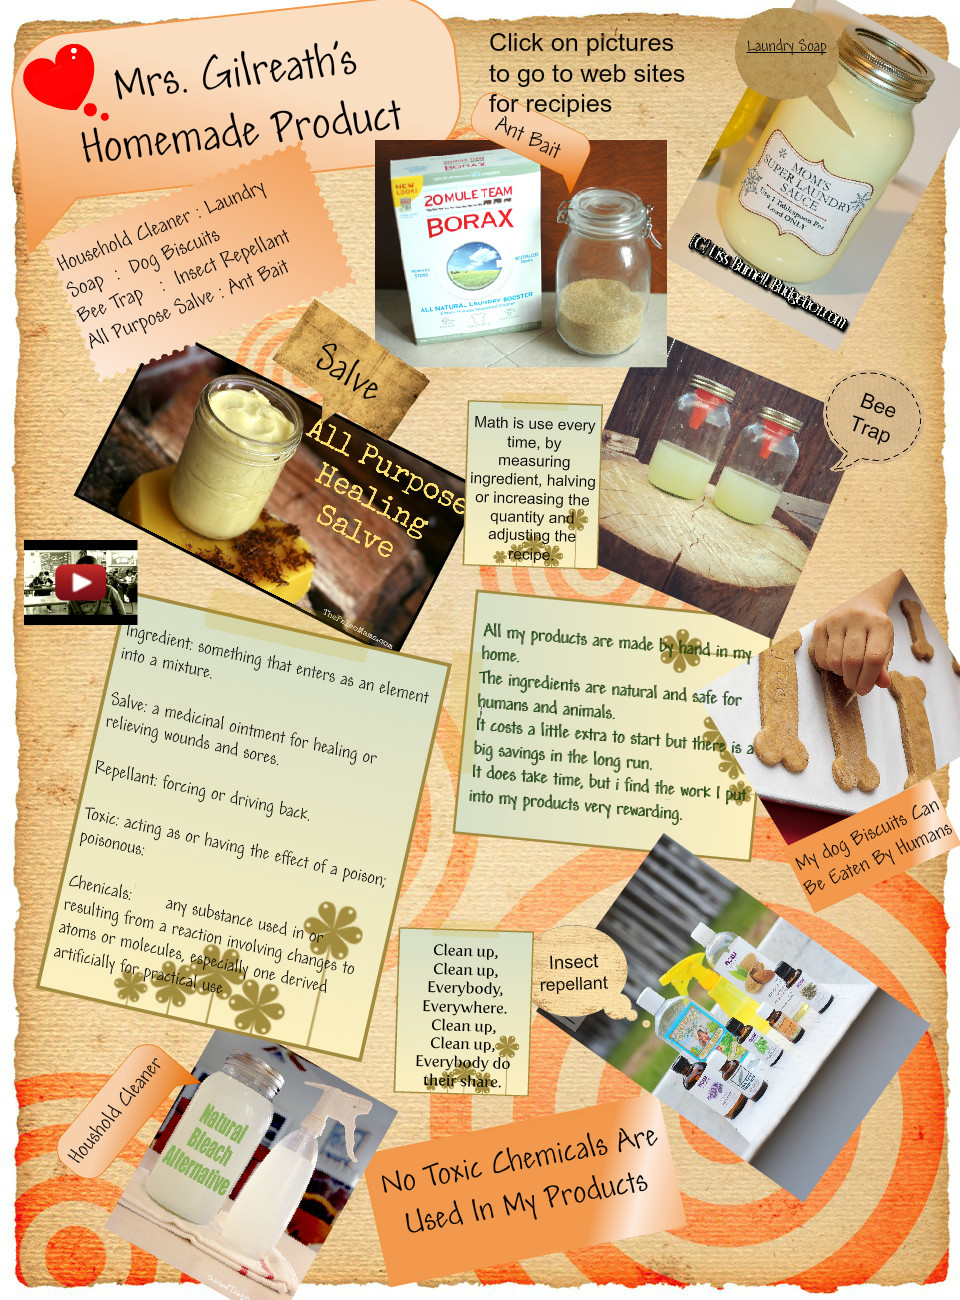 Homemade Products